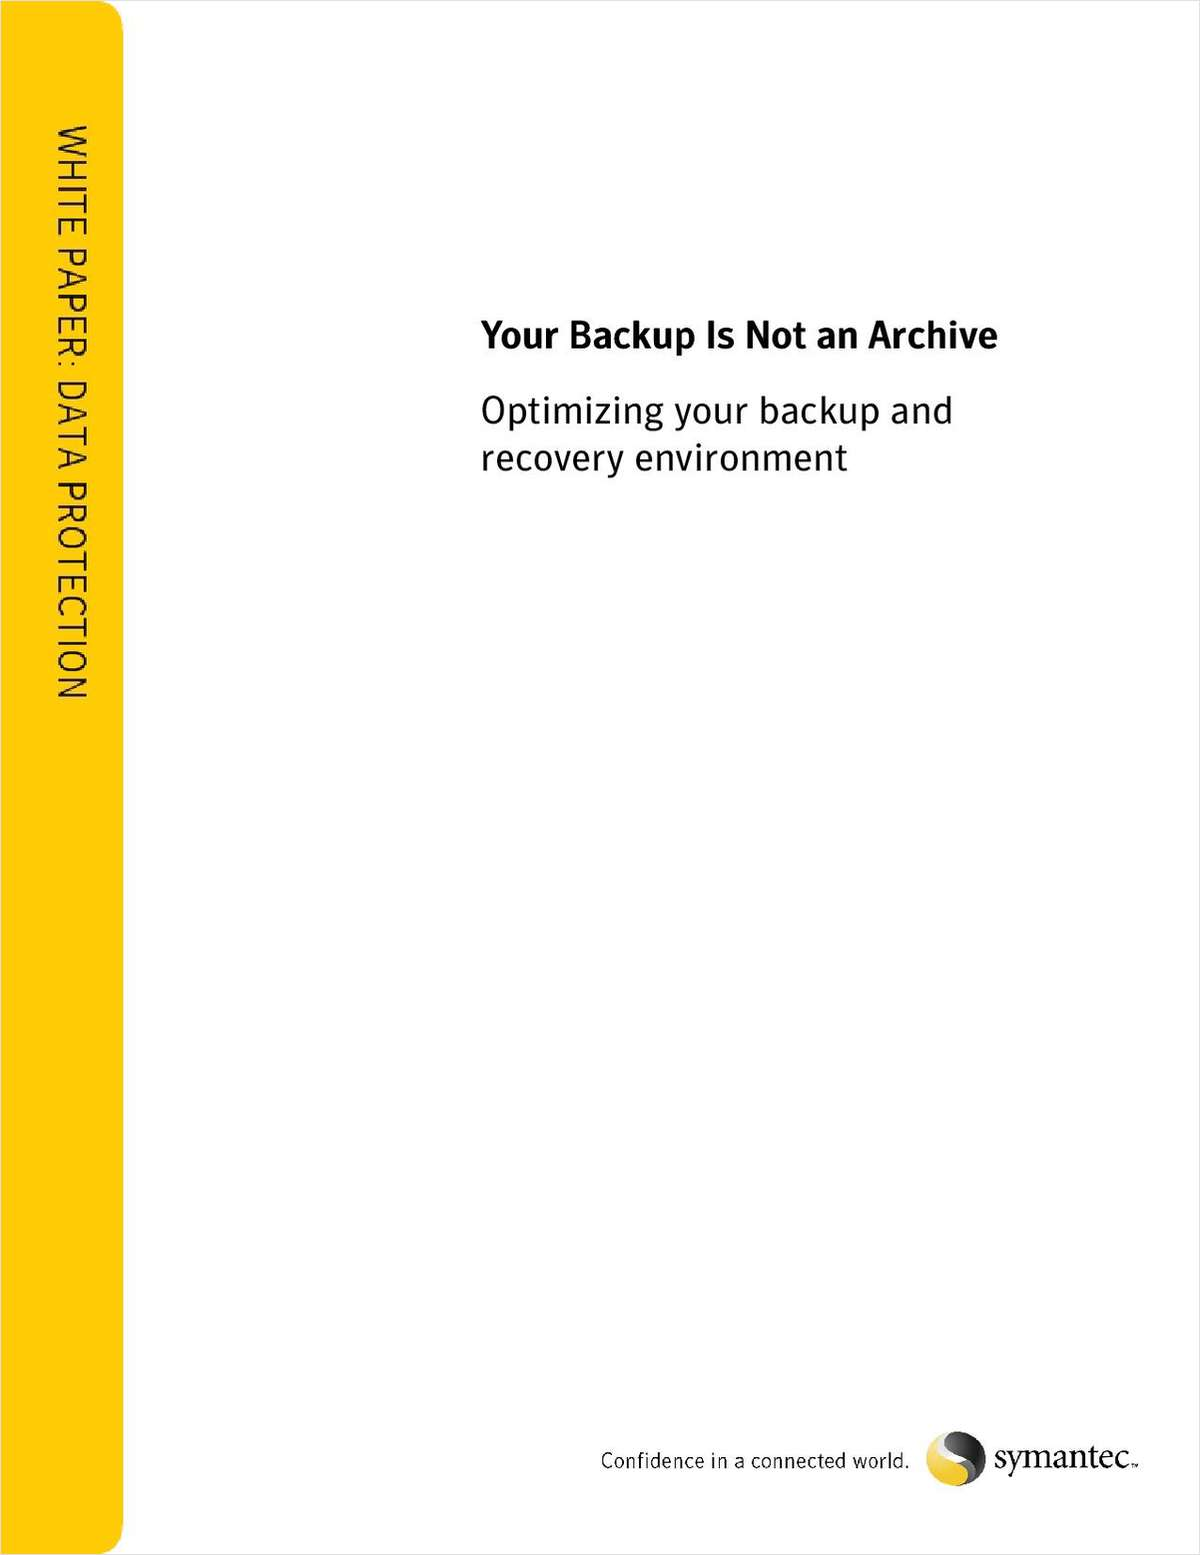 Your Backup Is Not an Archive -Optimizing Your Backup and Recovery Environment